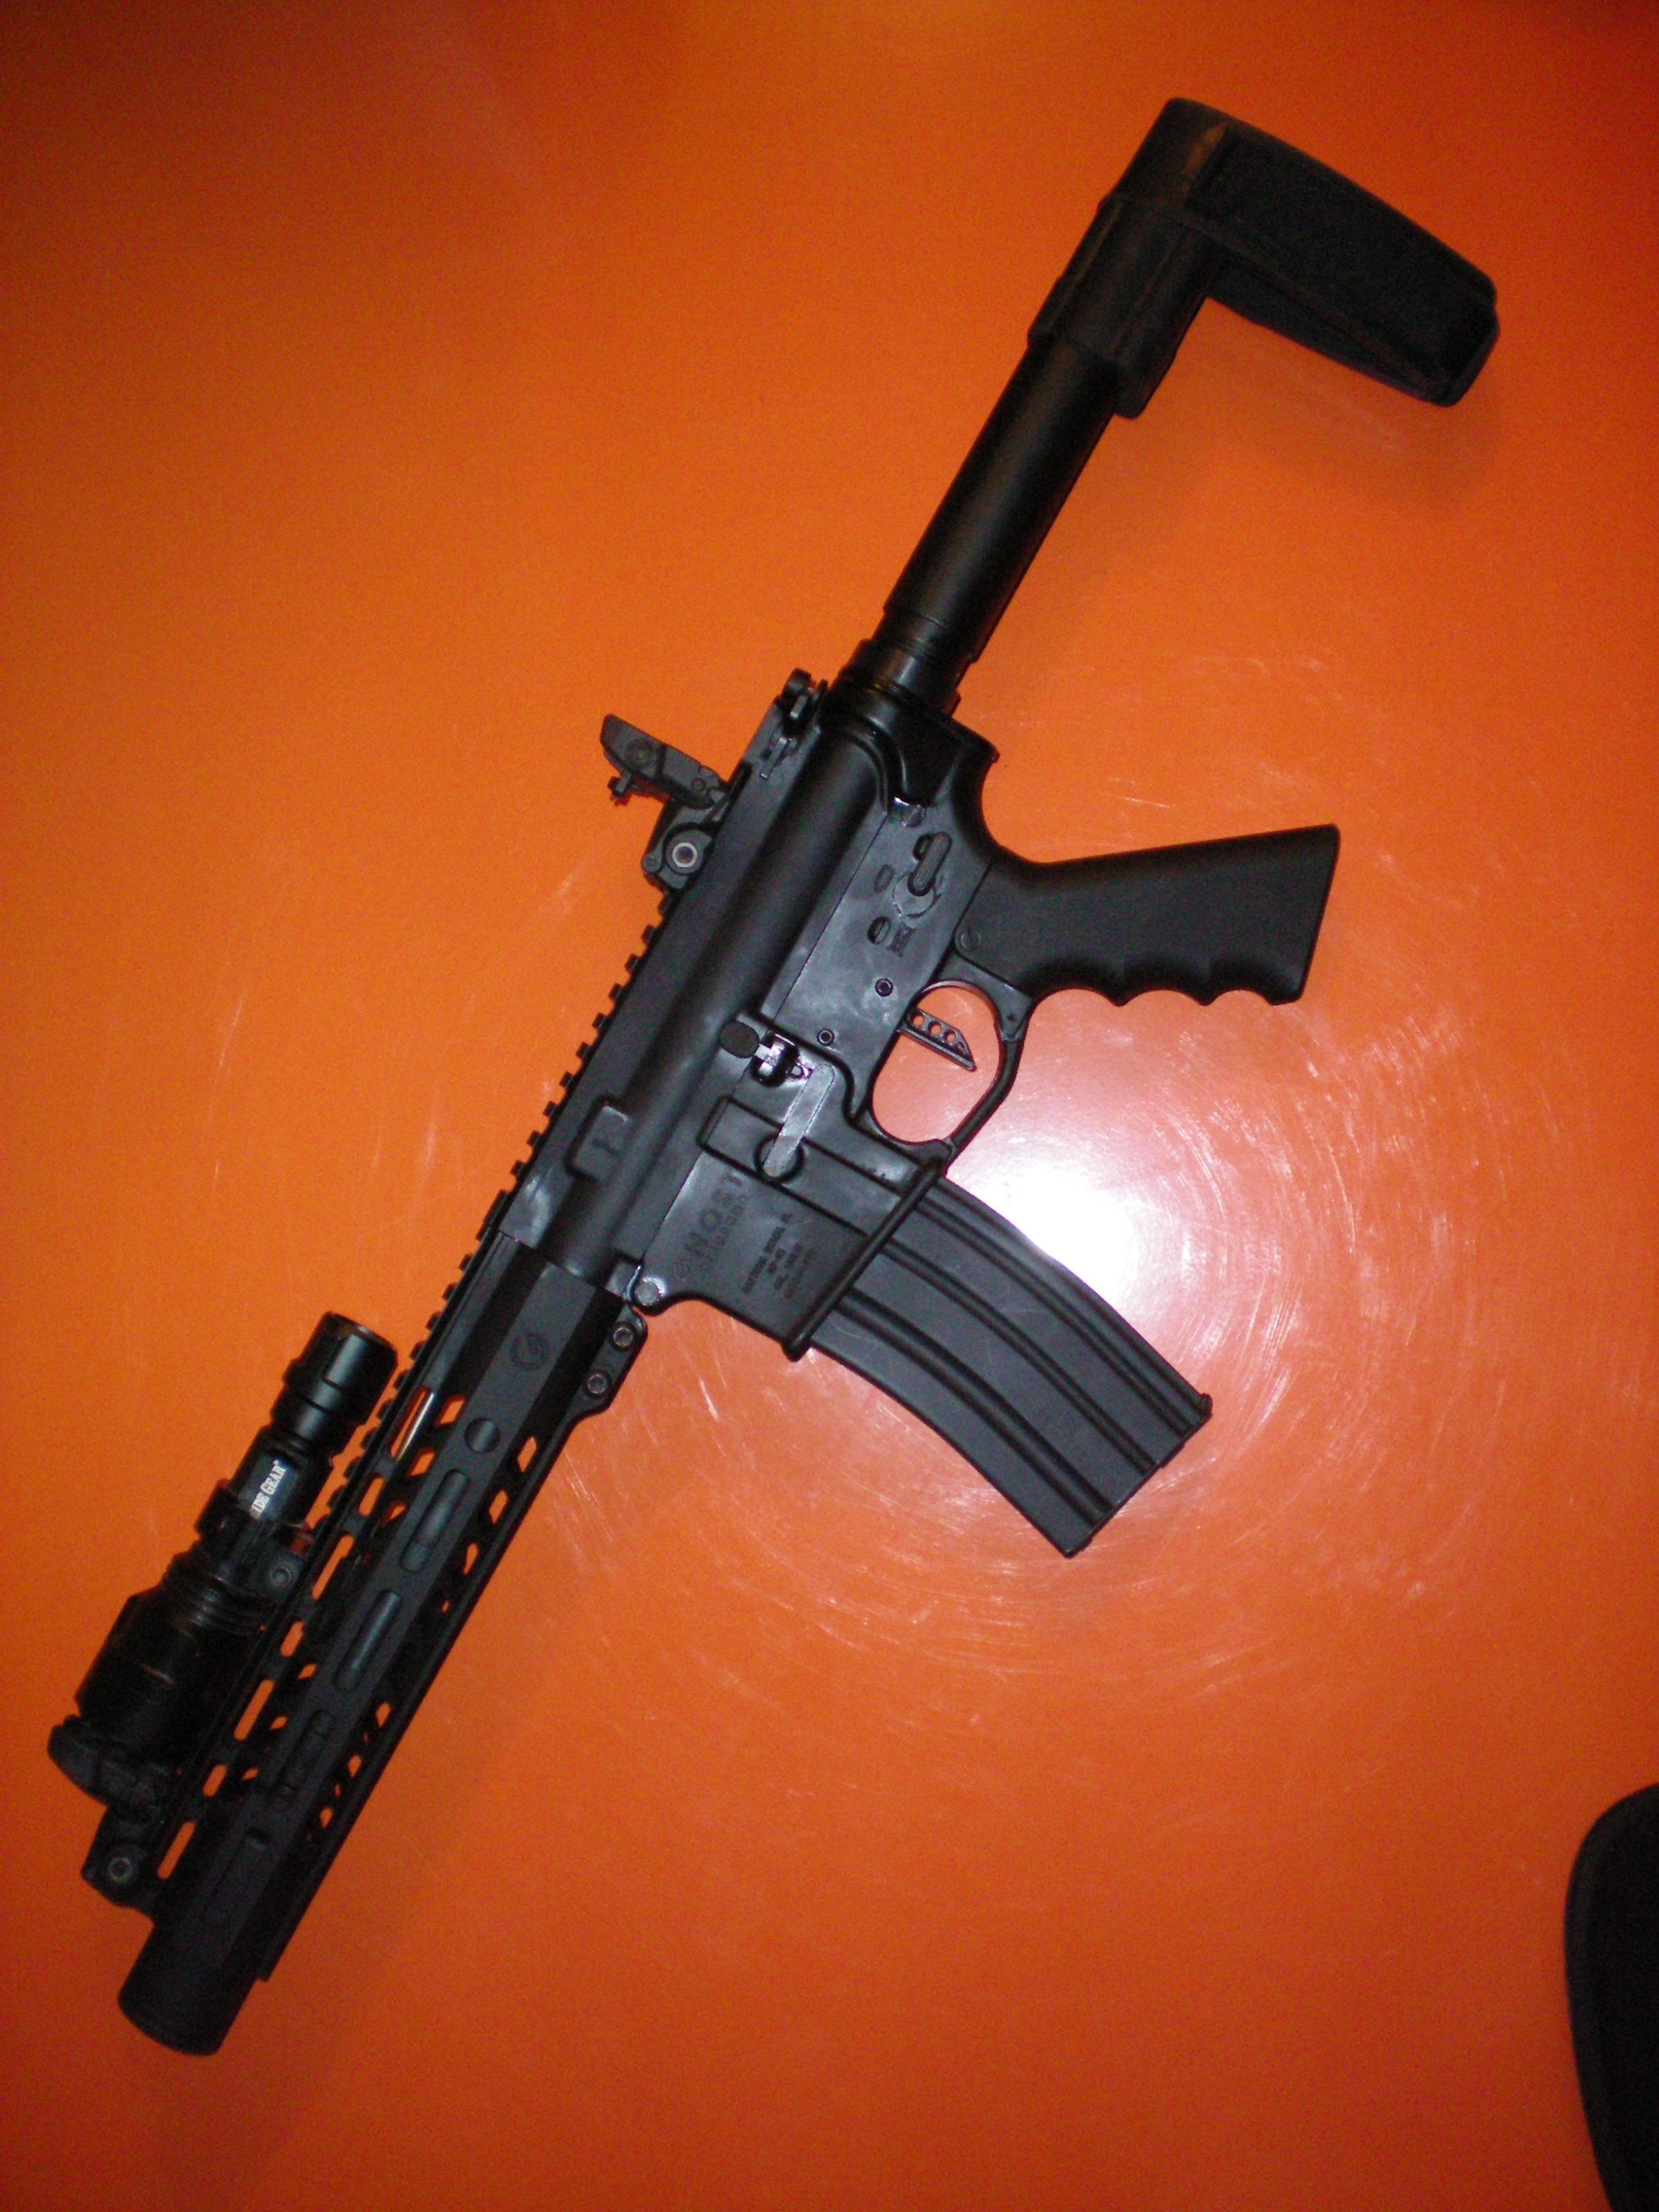 Anybody get anything good that's firearm related today?-100_0085.jpg